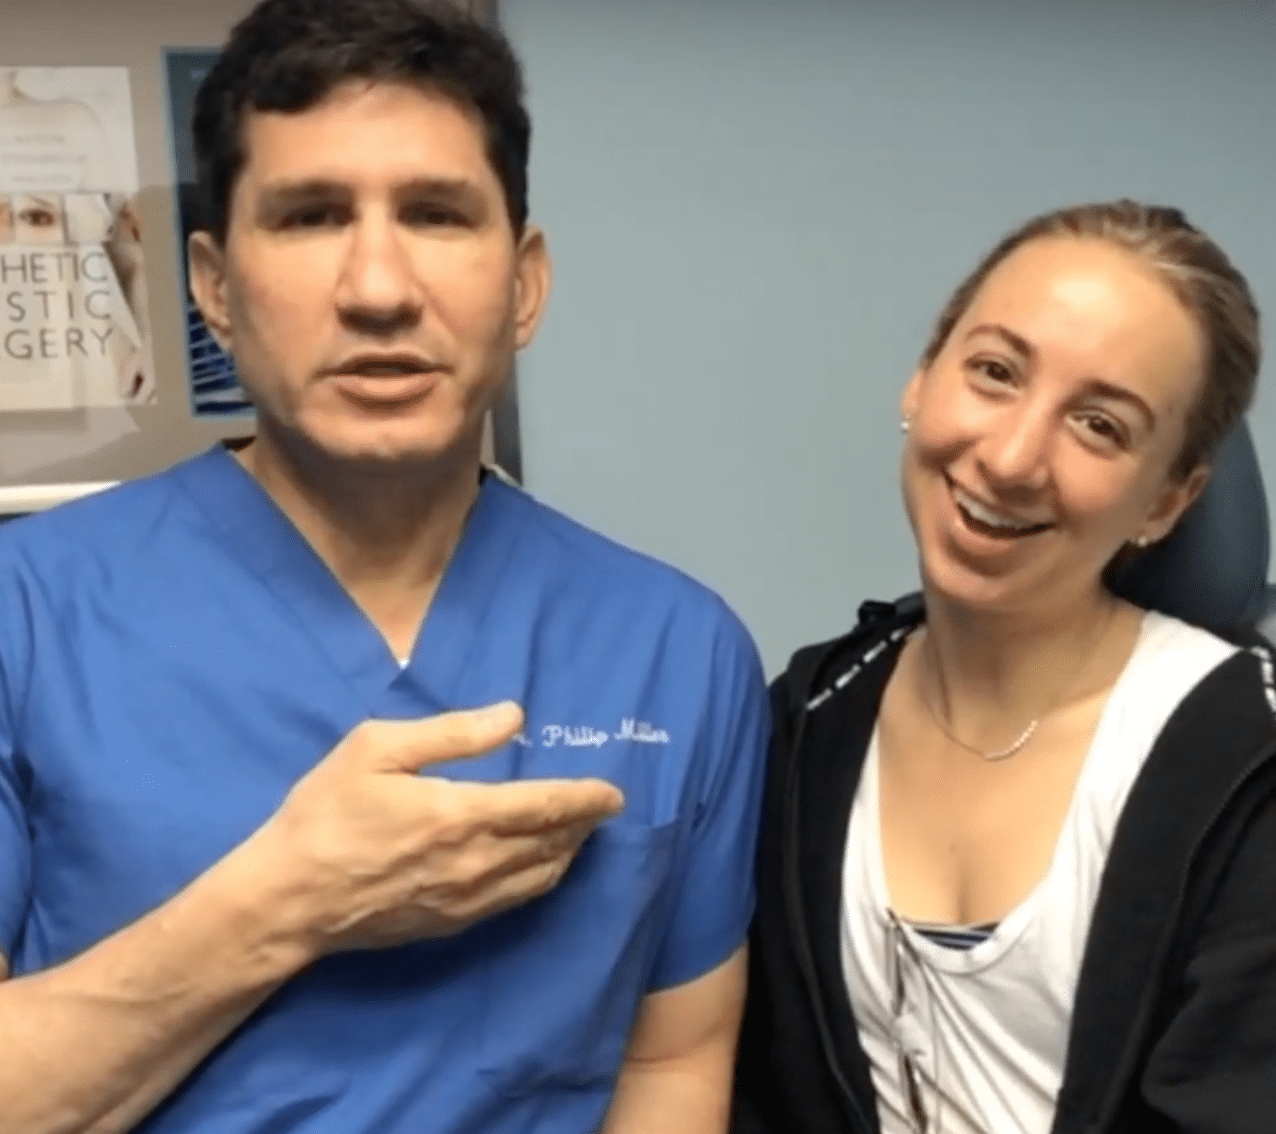 Claire's Nasal Obstruction is Removed by Dr. Philip Miller